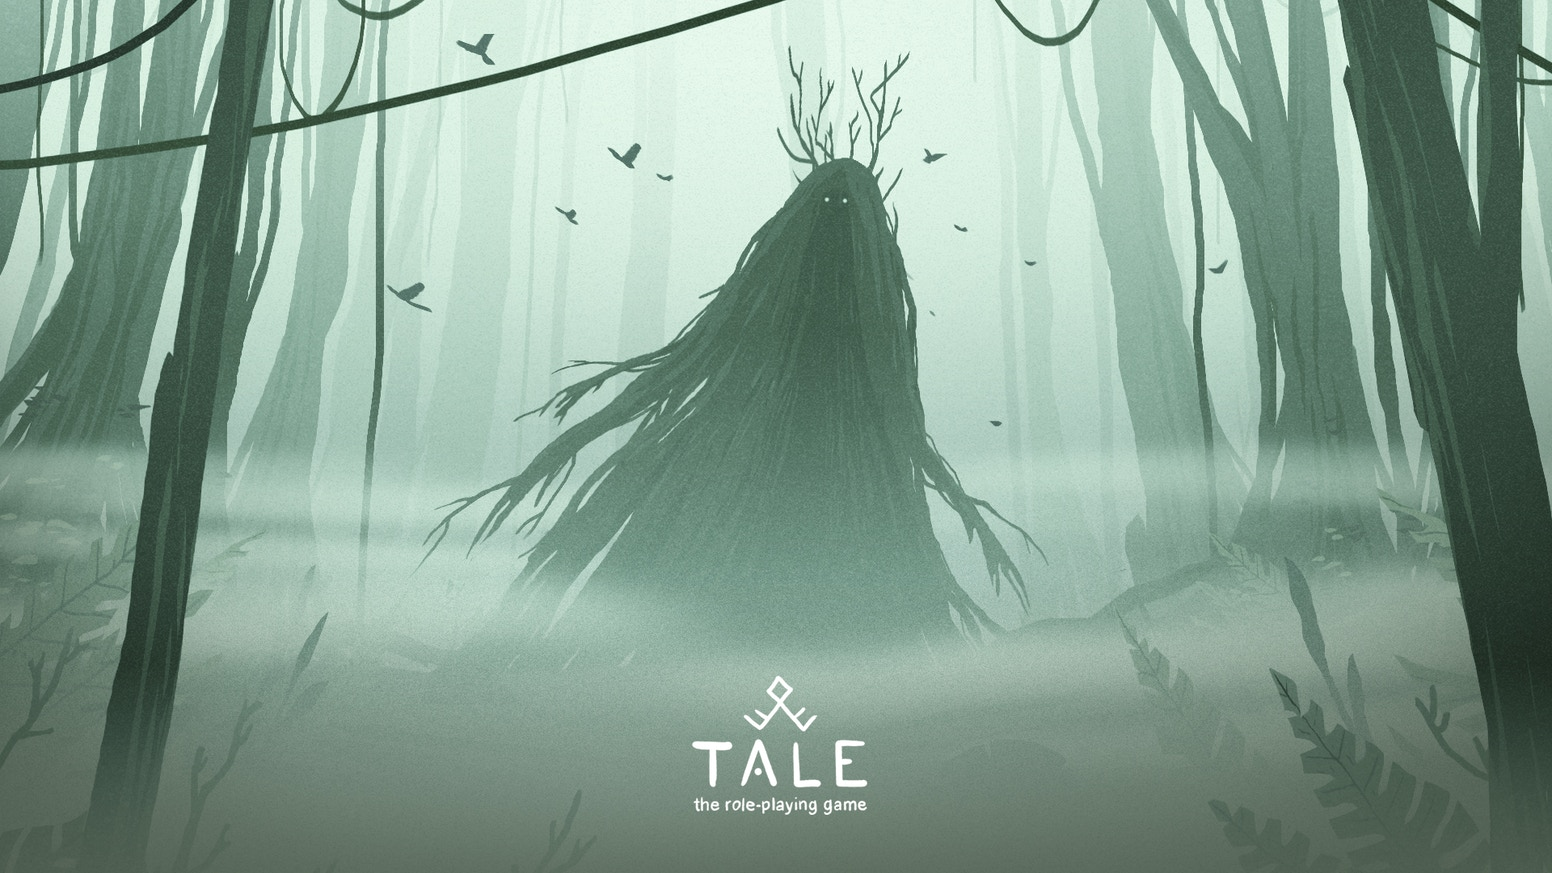 Tale is an easy-to-learn fantasy tabletop role-playing game that focuses on compelling storytelling and epic quests.